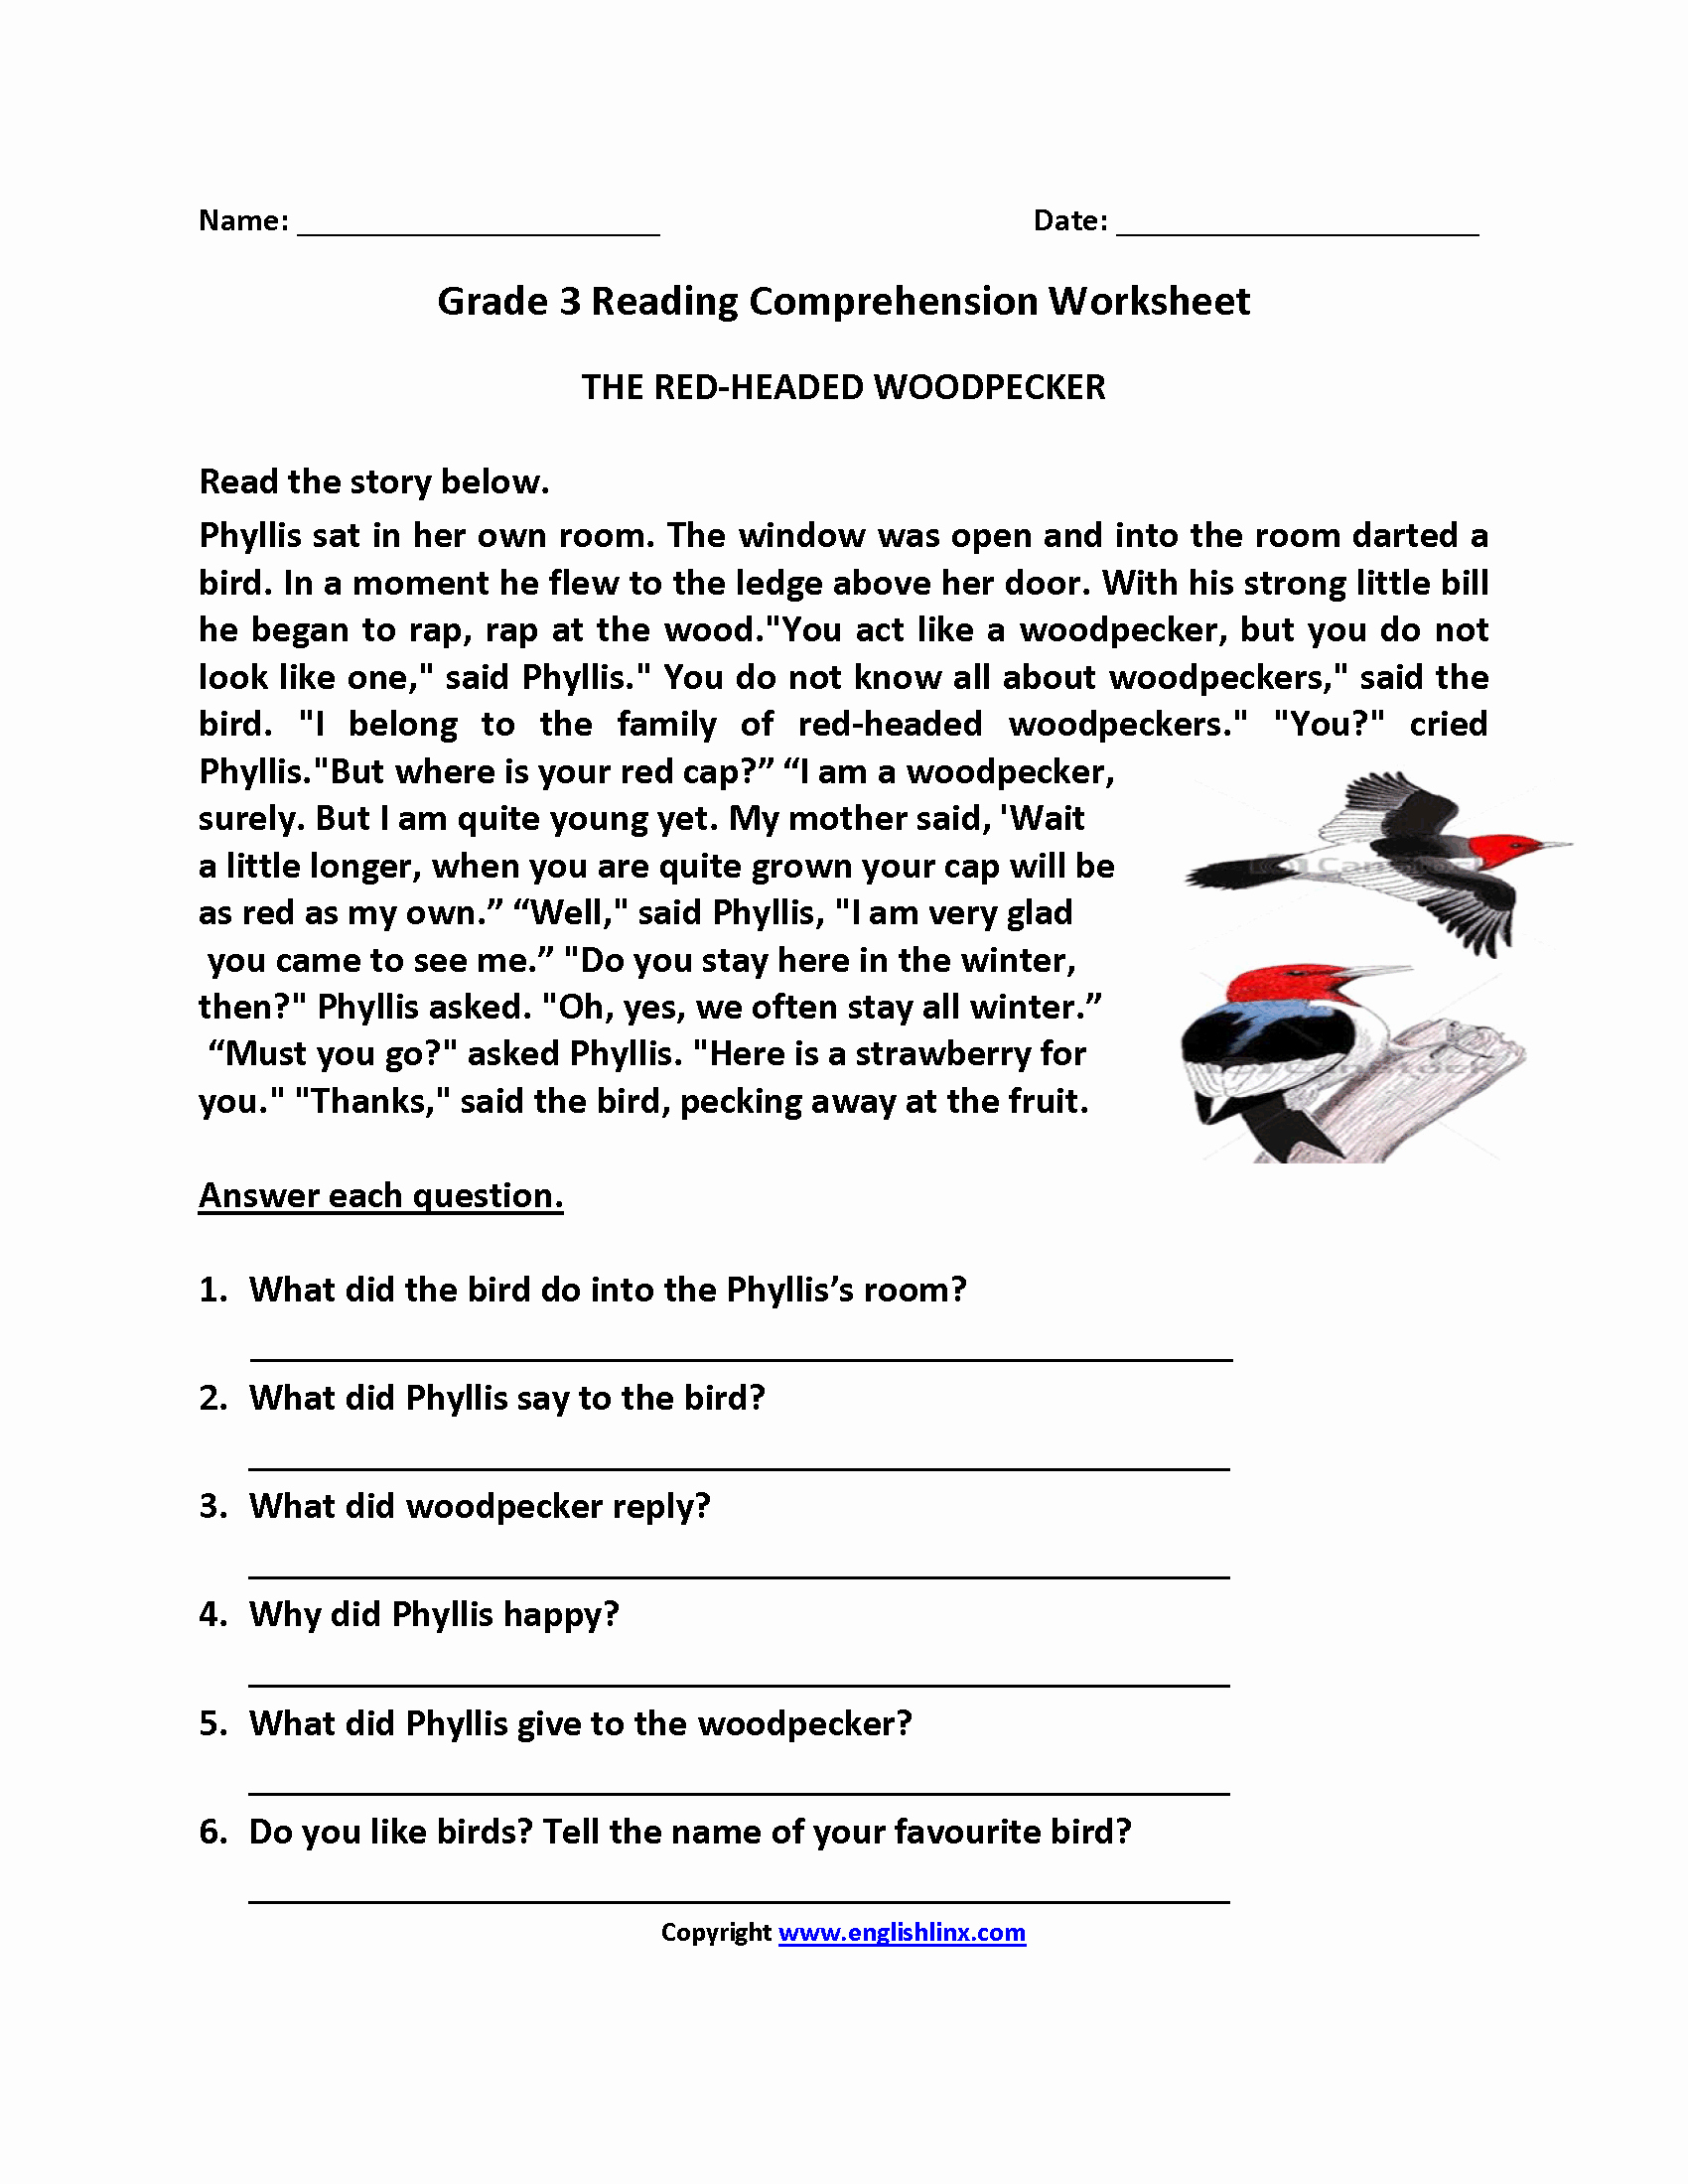 Proofreading Worksheets 3rd Grade Lovely the Redheaded Woodpecker Third Grade Reading Worksheets